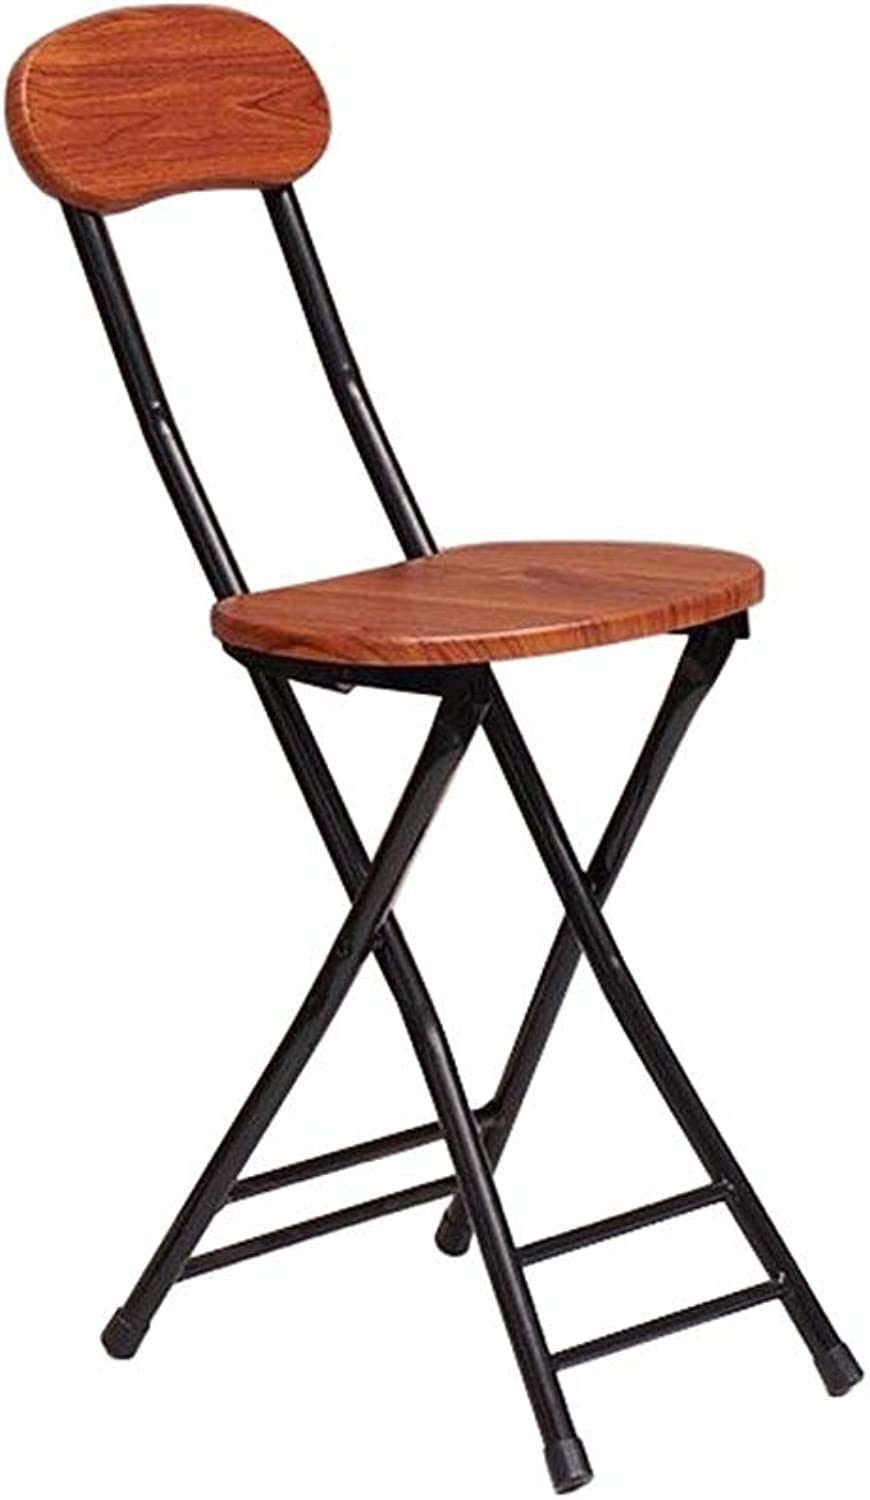 Folding Dining Chair High Back Tall Chairs Home Breakfast Kitchen Bar Counter Stool